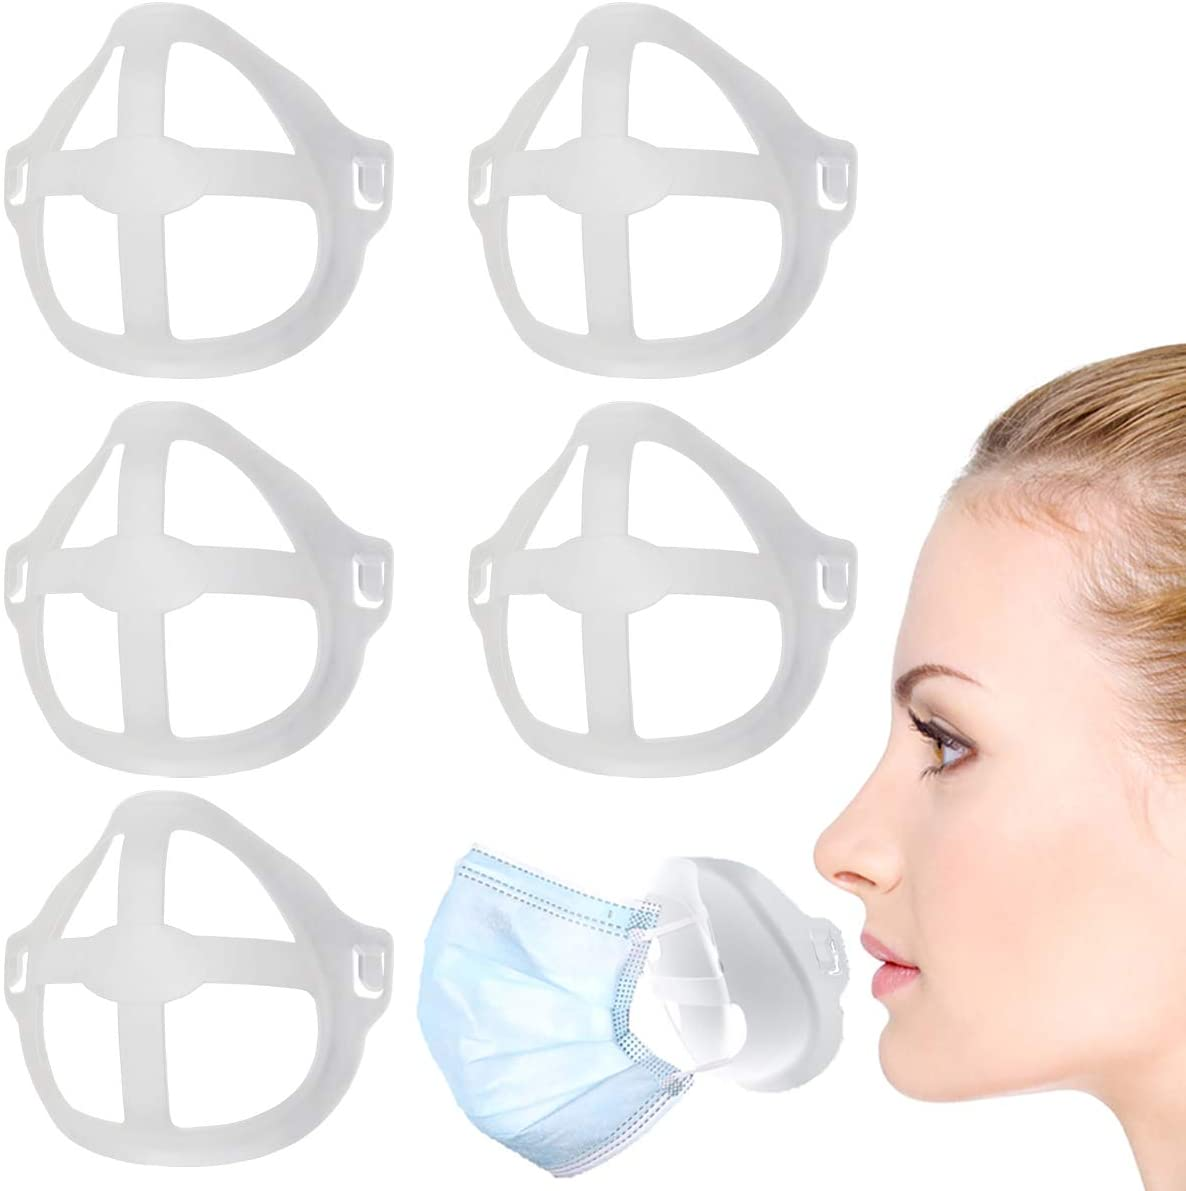 3D Mask Bracket, Mask Inner Supporter Frame Wearing Cool Bracket, Keep Fabric off Mouth More Space for Comfortable Breathing Washable Reusable Translucent White (15 PCS)